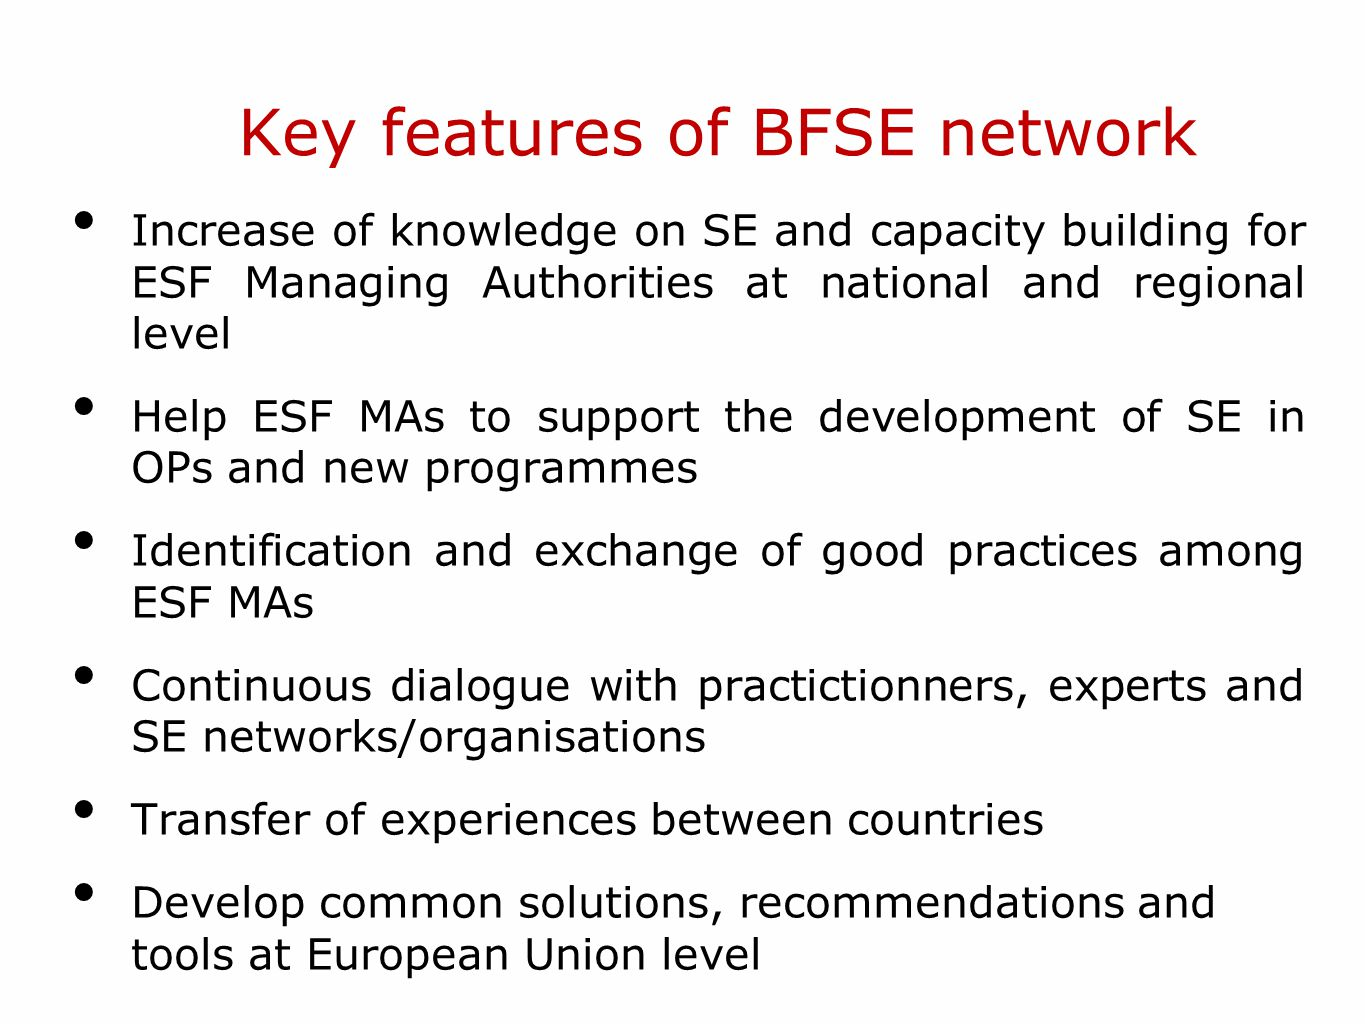 Key features of BFSE network Increase of knowledge on SE and capacity building for ESF Managing Authorities at national and regional level Help ESF MA